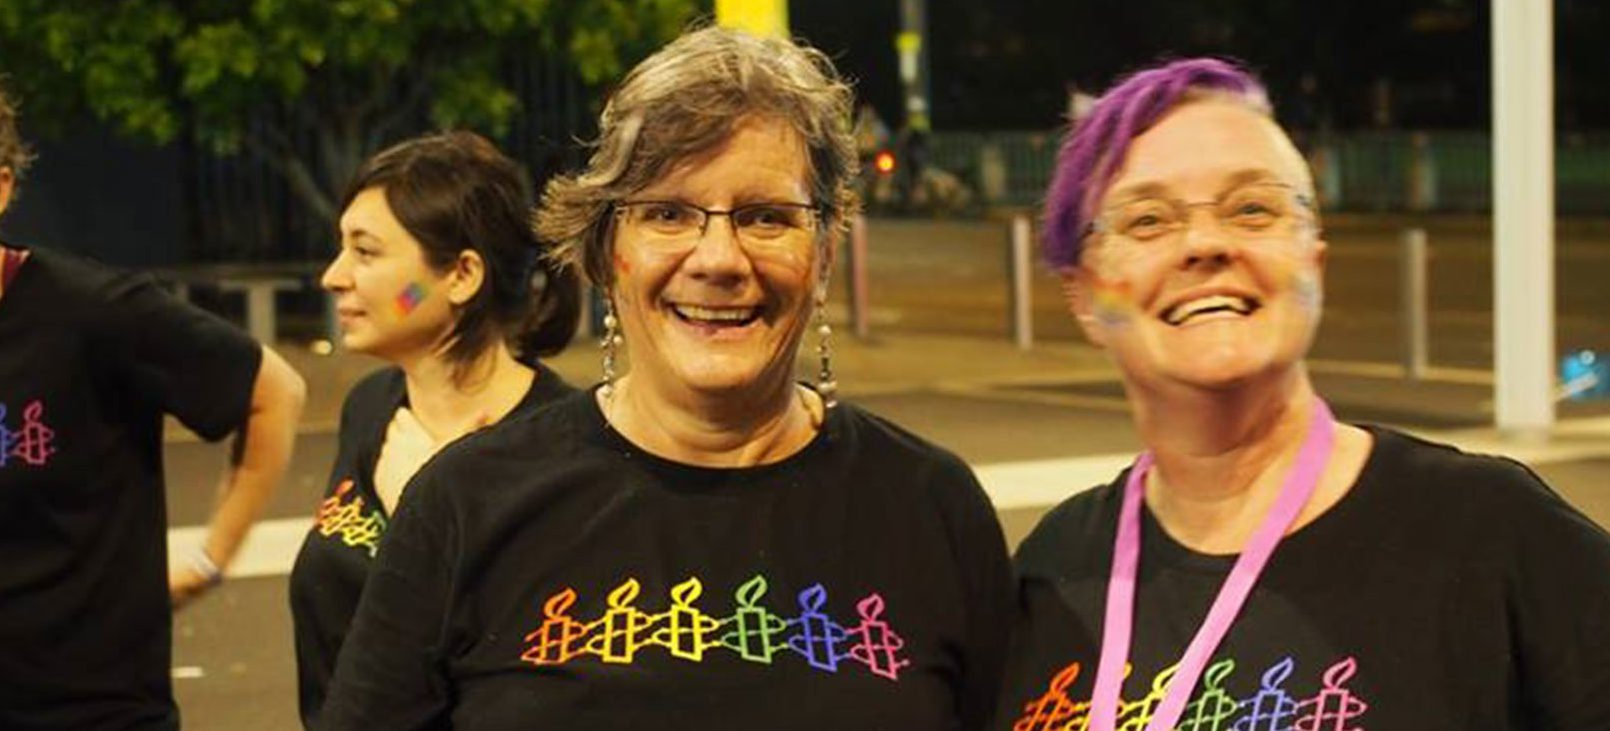 NSW LGBTQI Network at the 2017 Mardi Gras Parade. © Cosmo Price